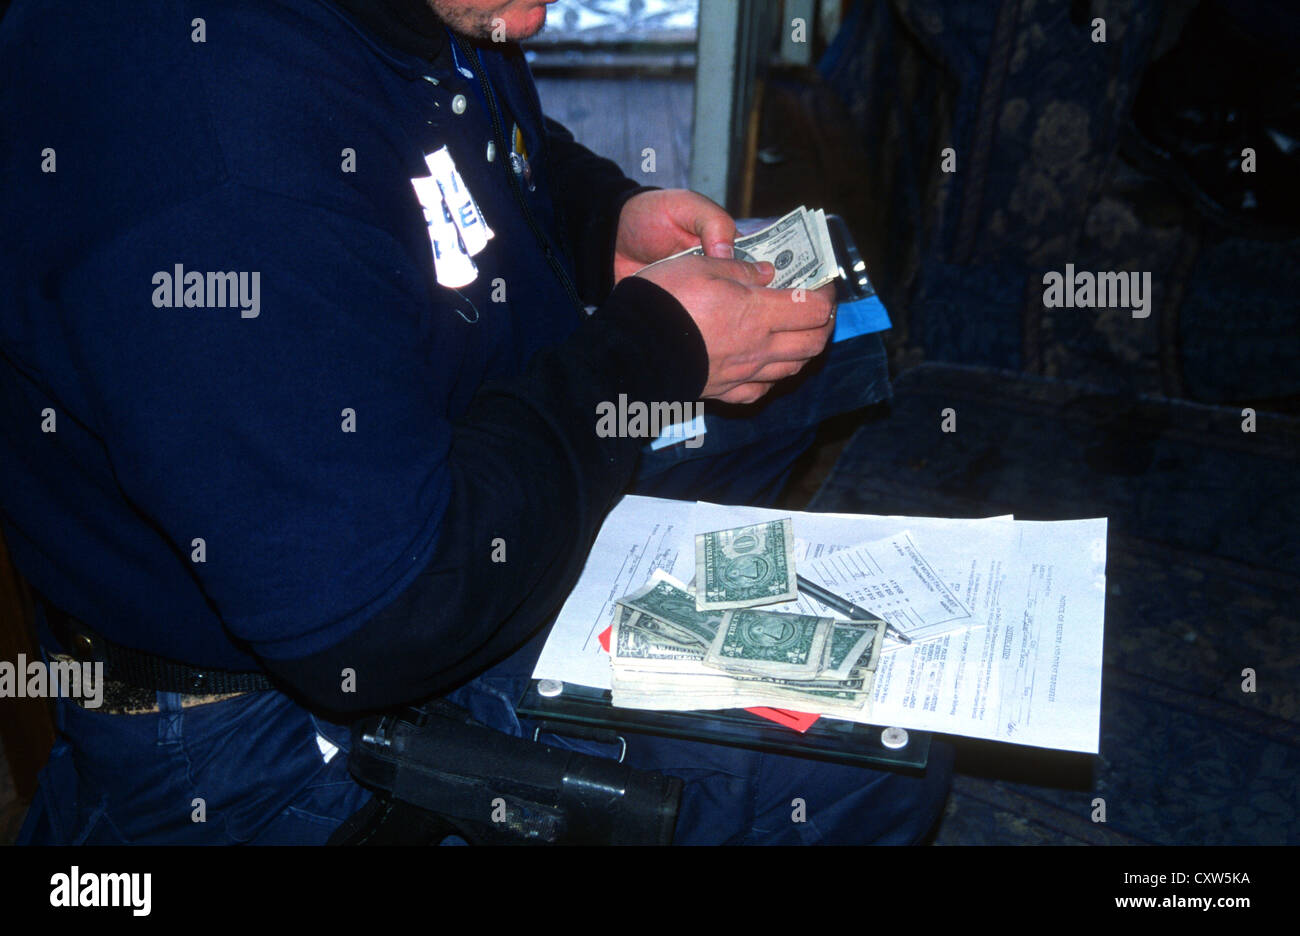 Detroit police Narcotics officer counts a pile of money seized during a drugs search warrant, Detroit, Michigan, - Stock Image